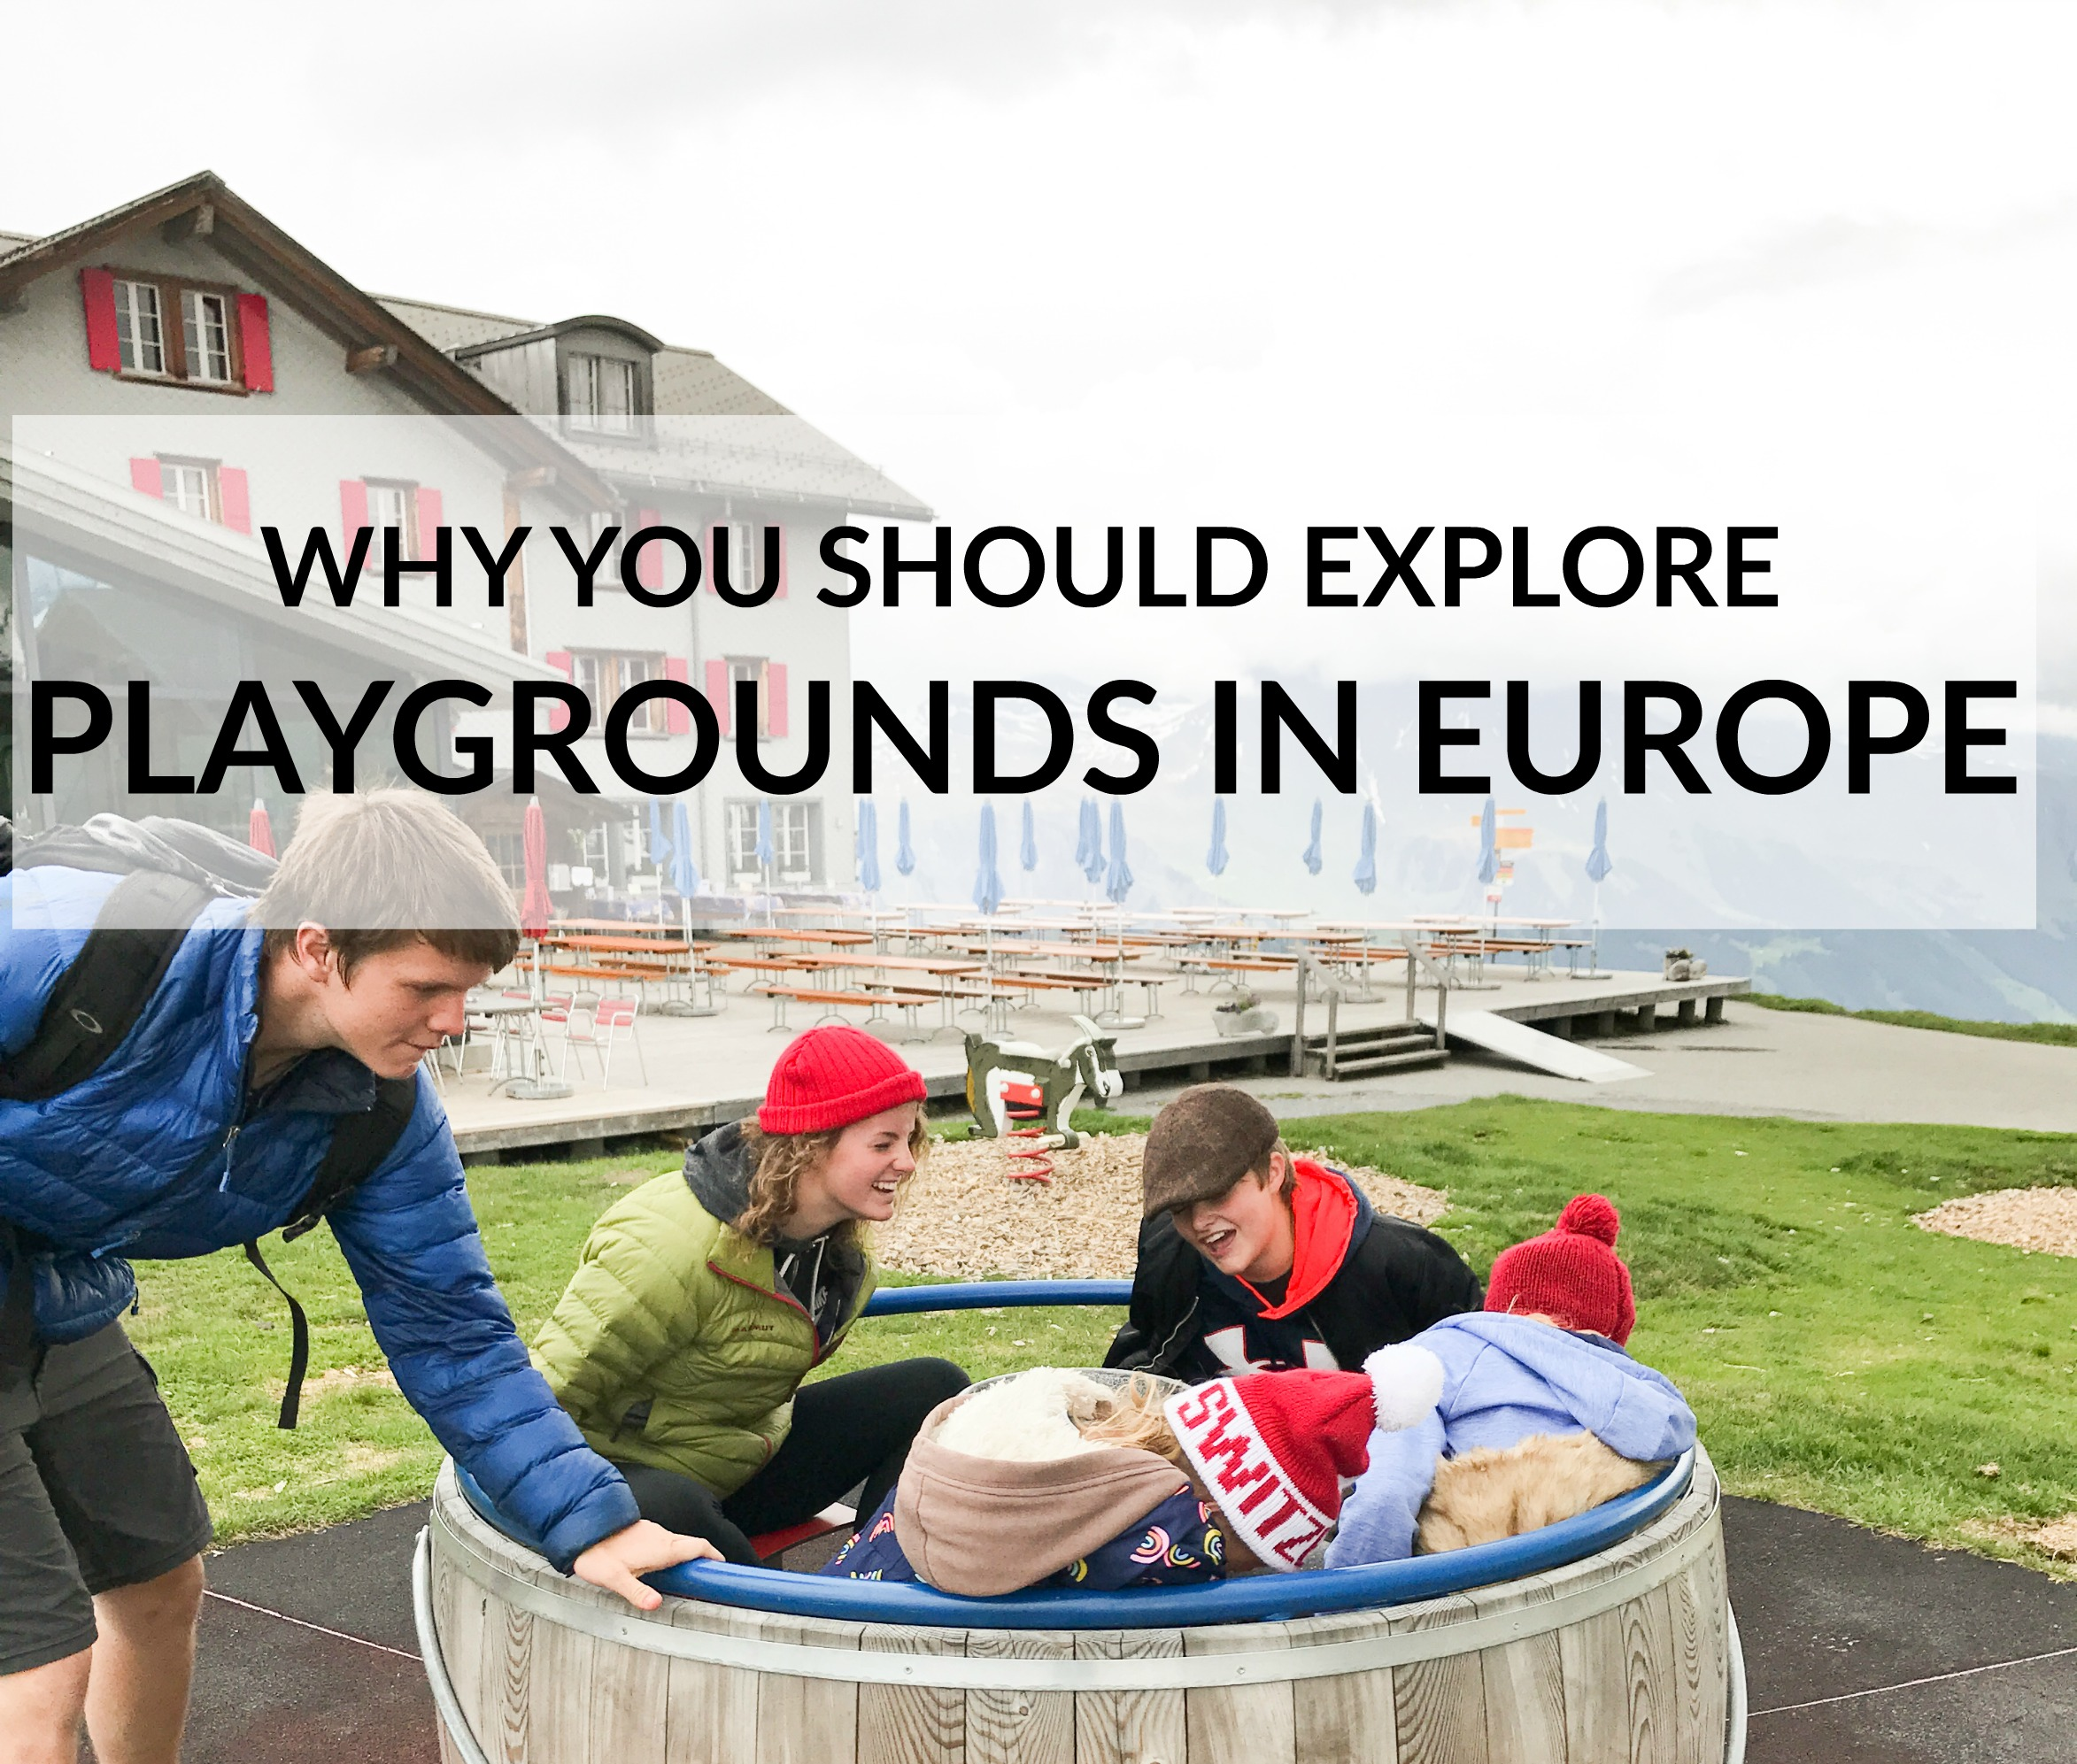 Playgrounds in Europe